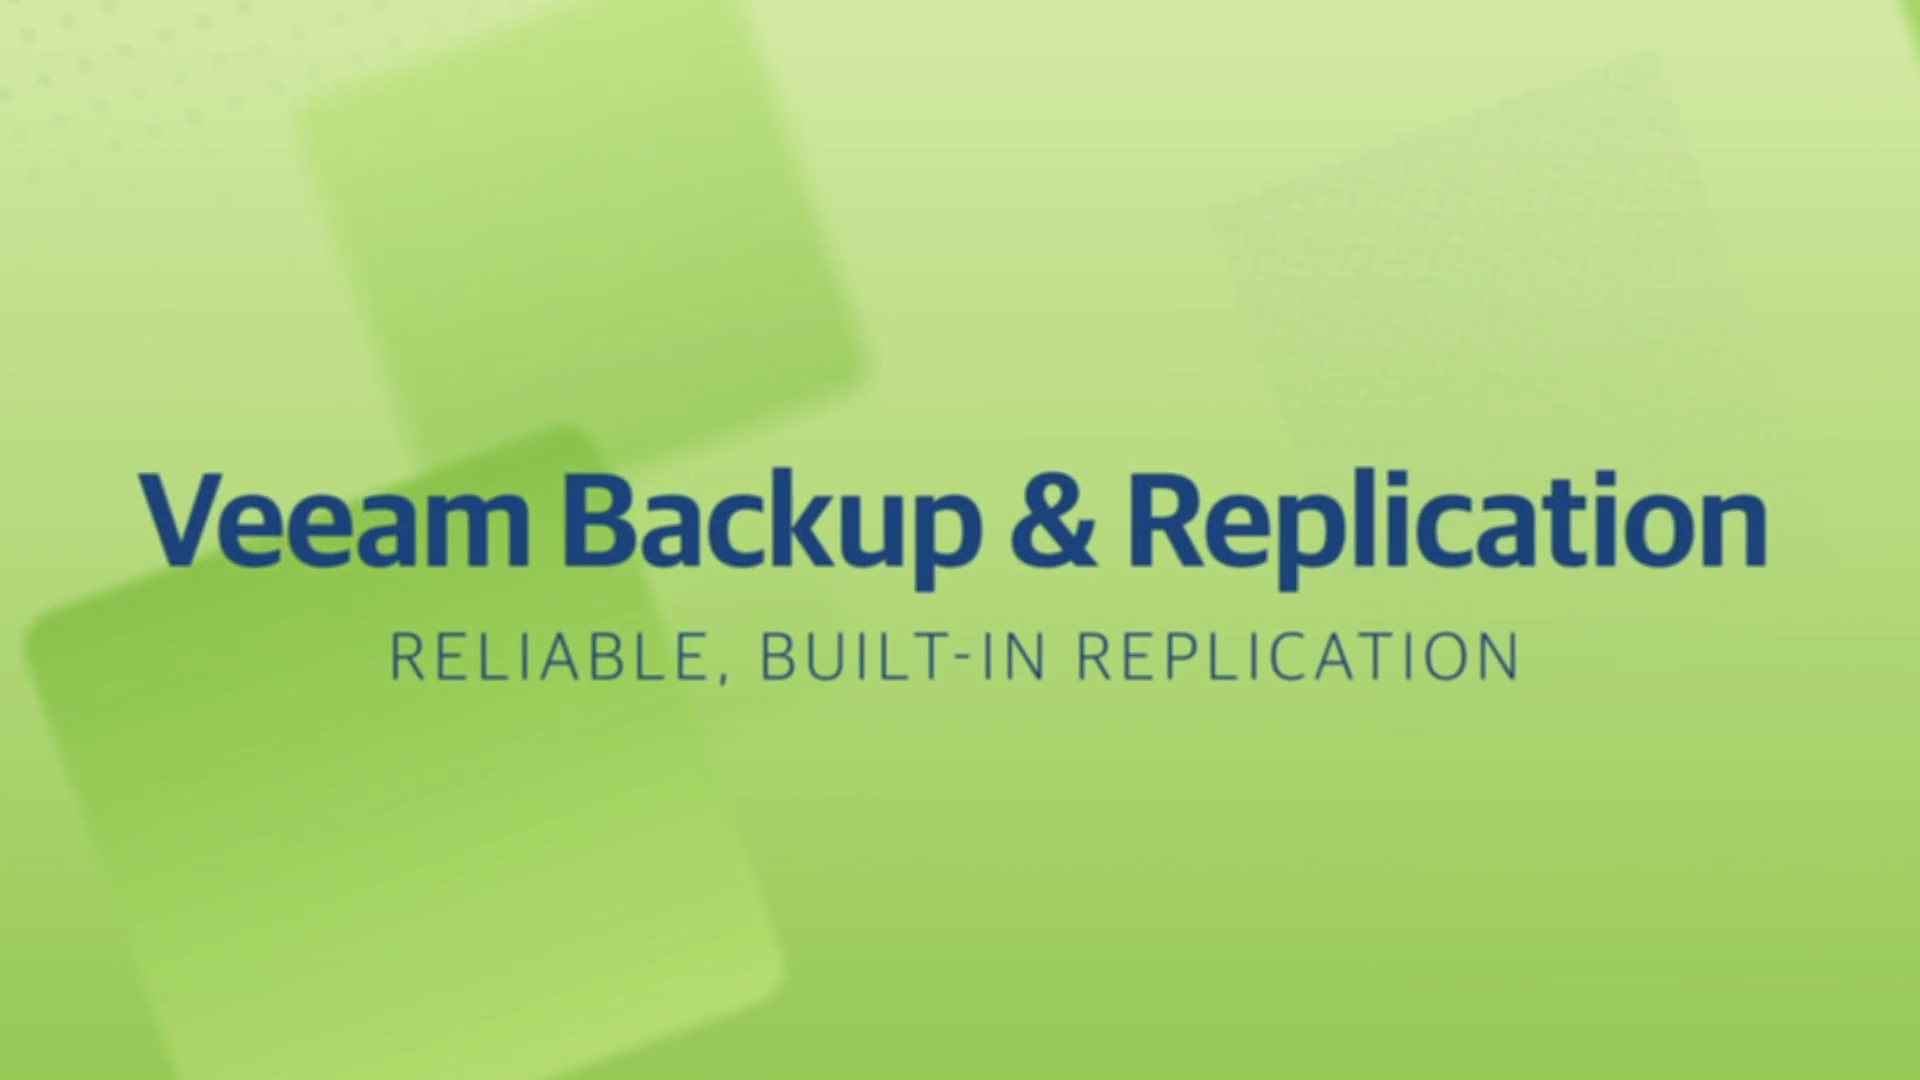 Product launch v11 - VBR - Reliable Built-in Replication